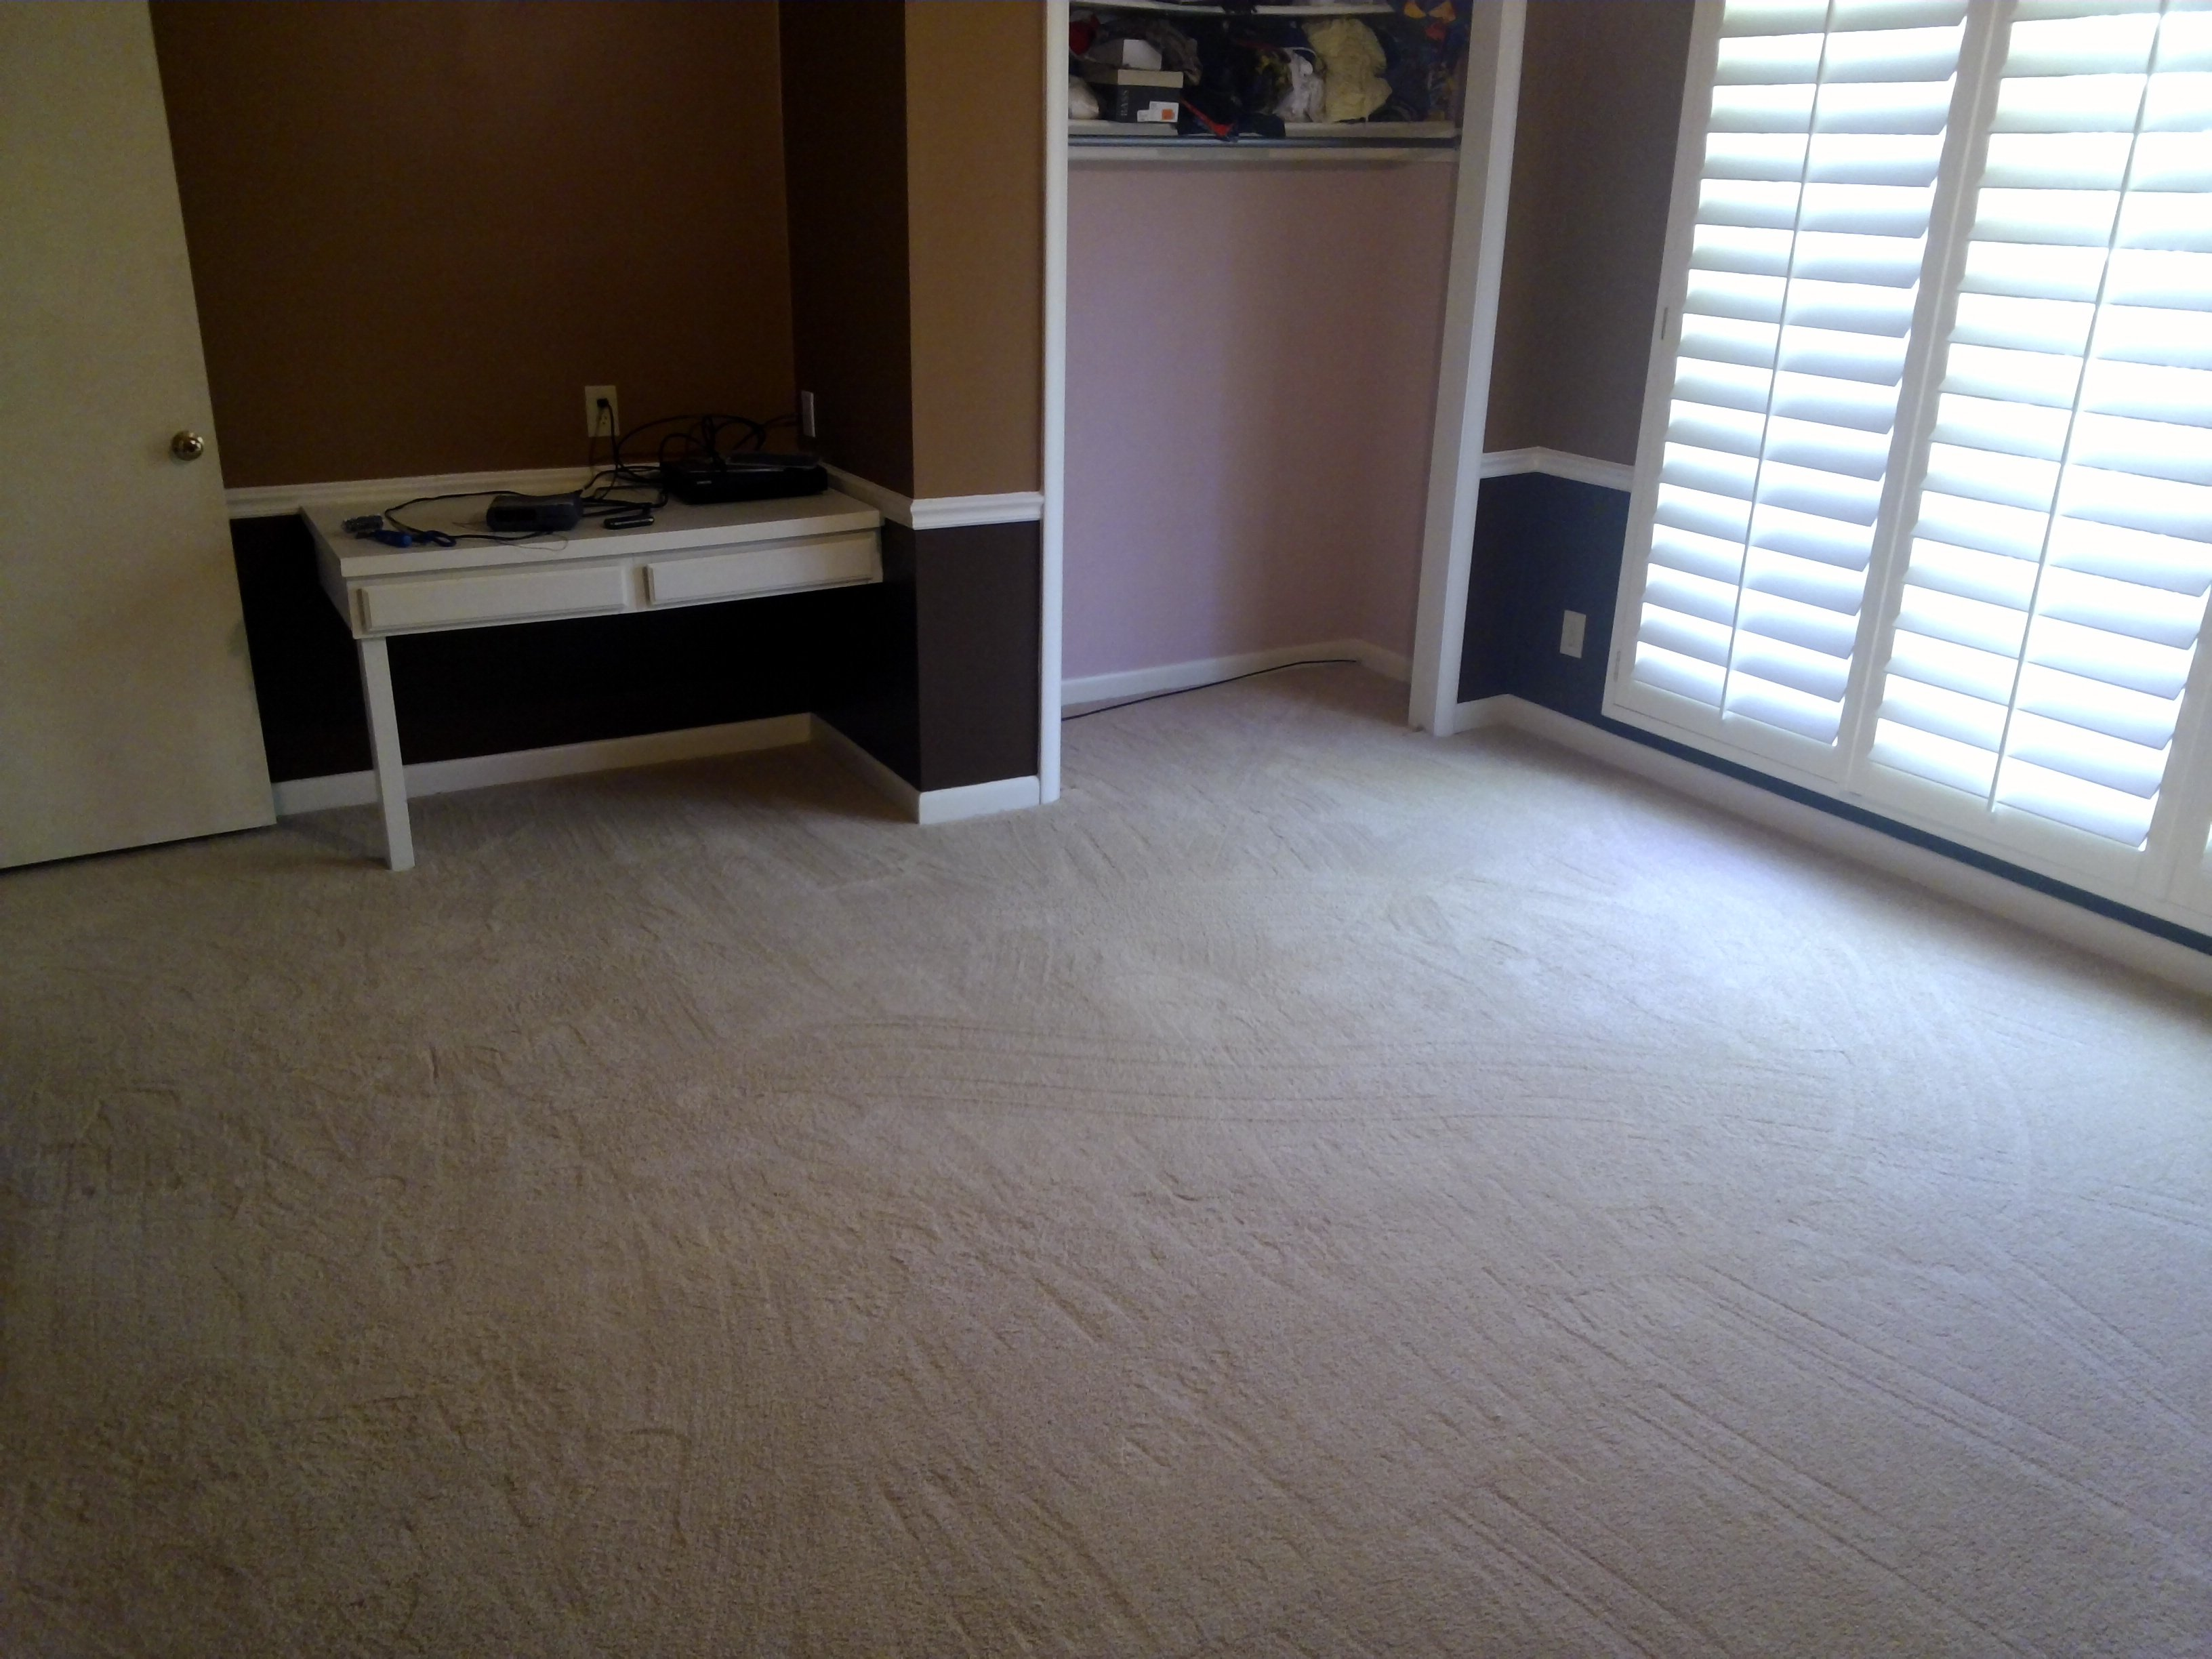 Common Carpet Cleaning Amp Shampooing Mistakes Homeadvisor